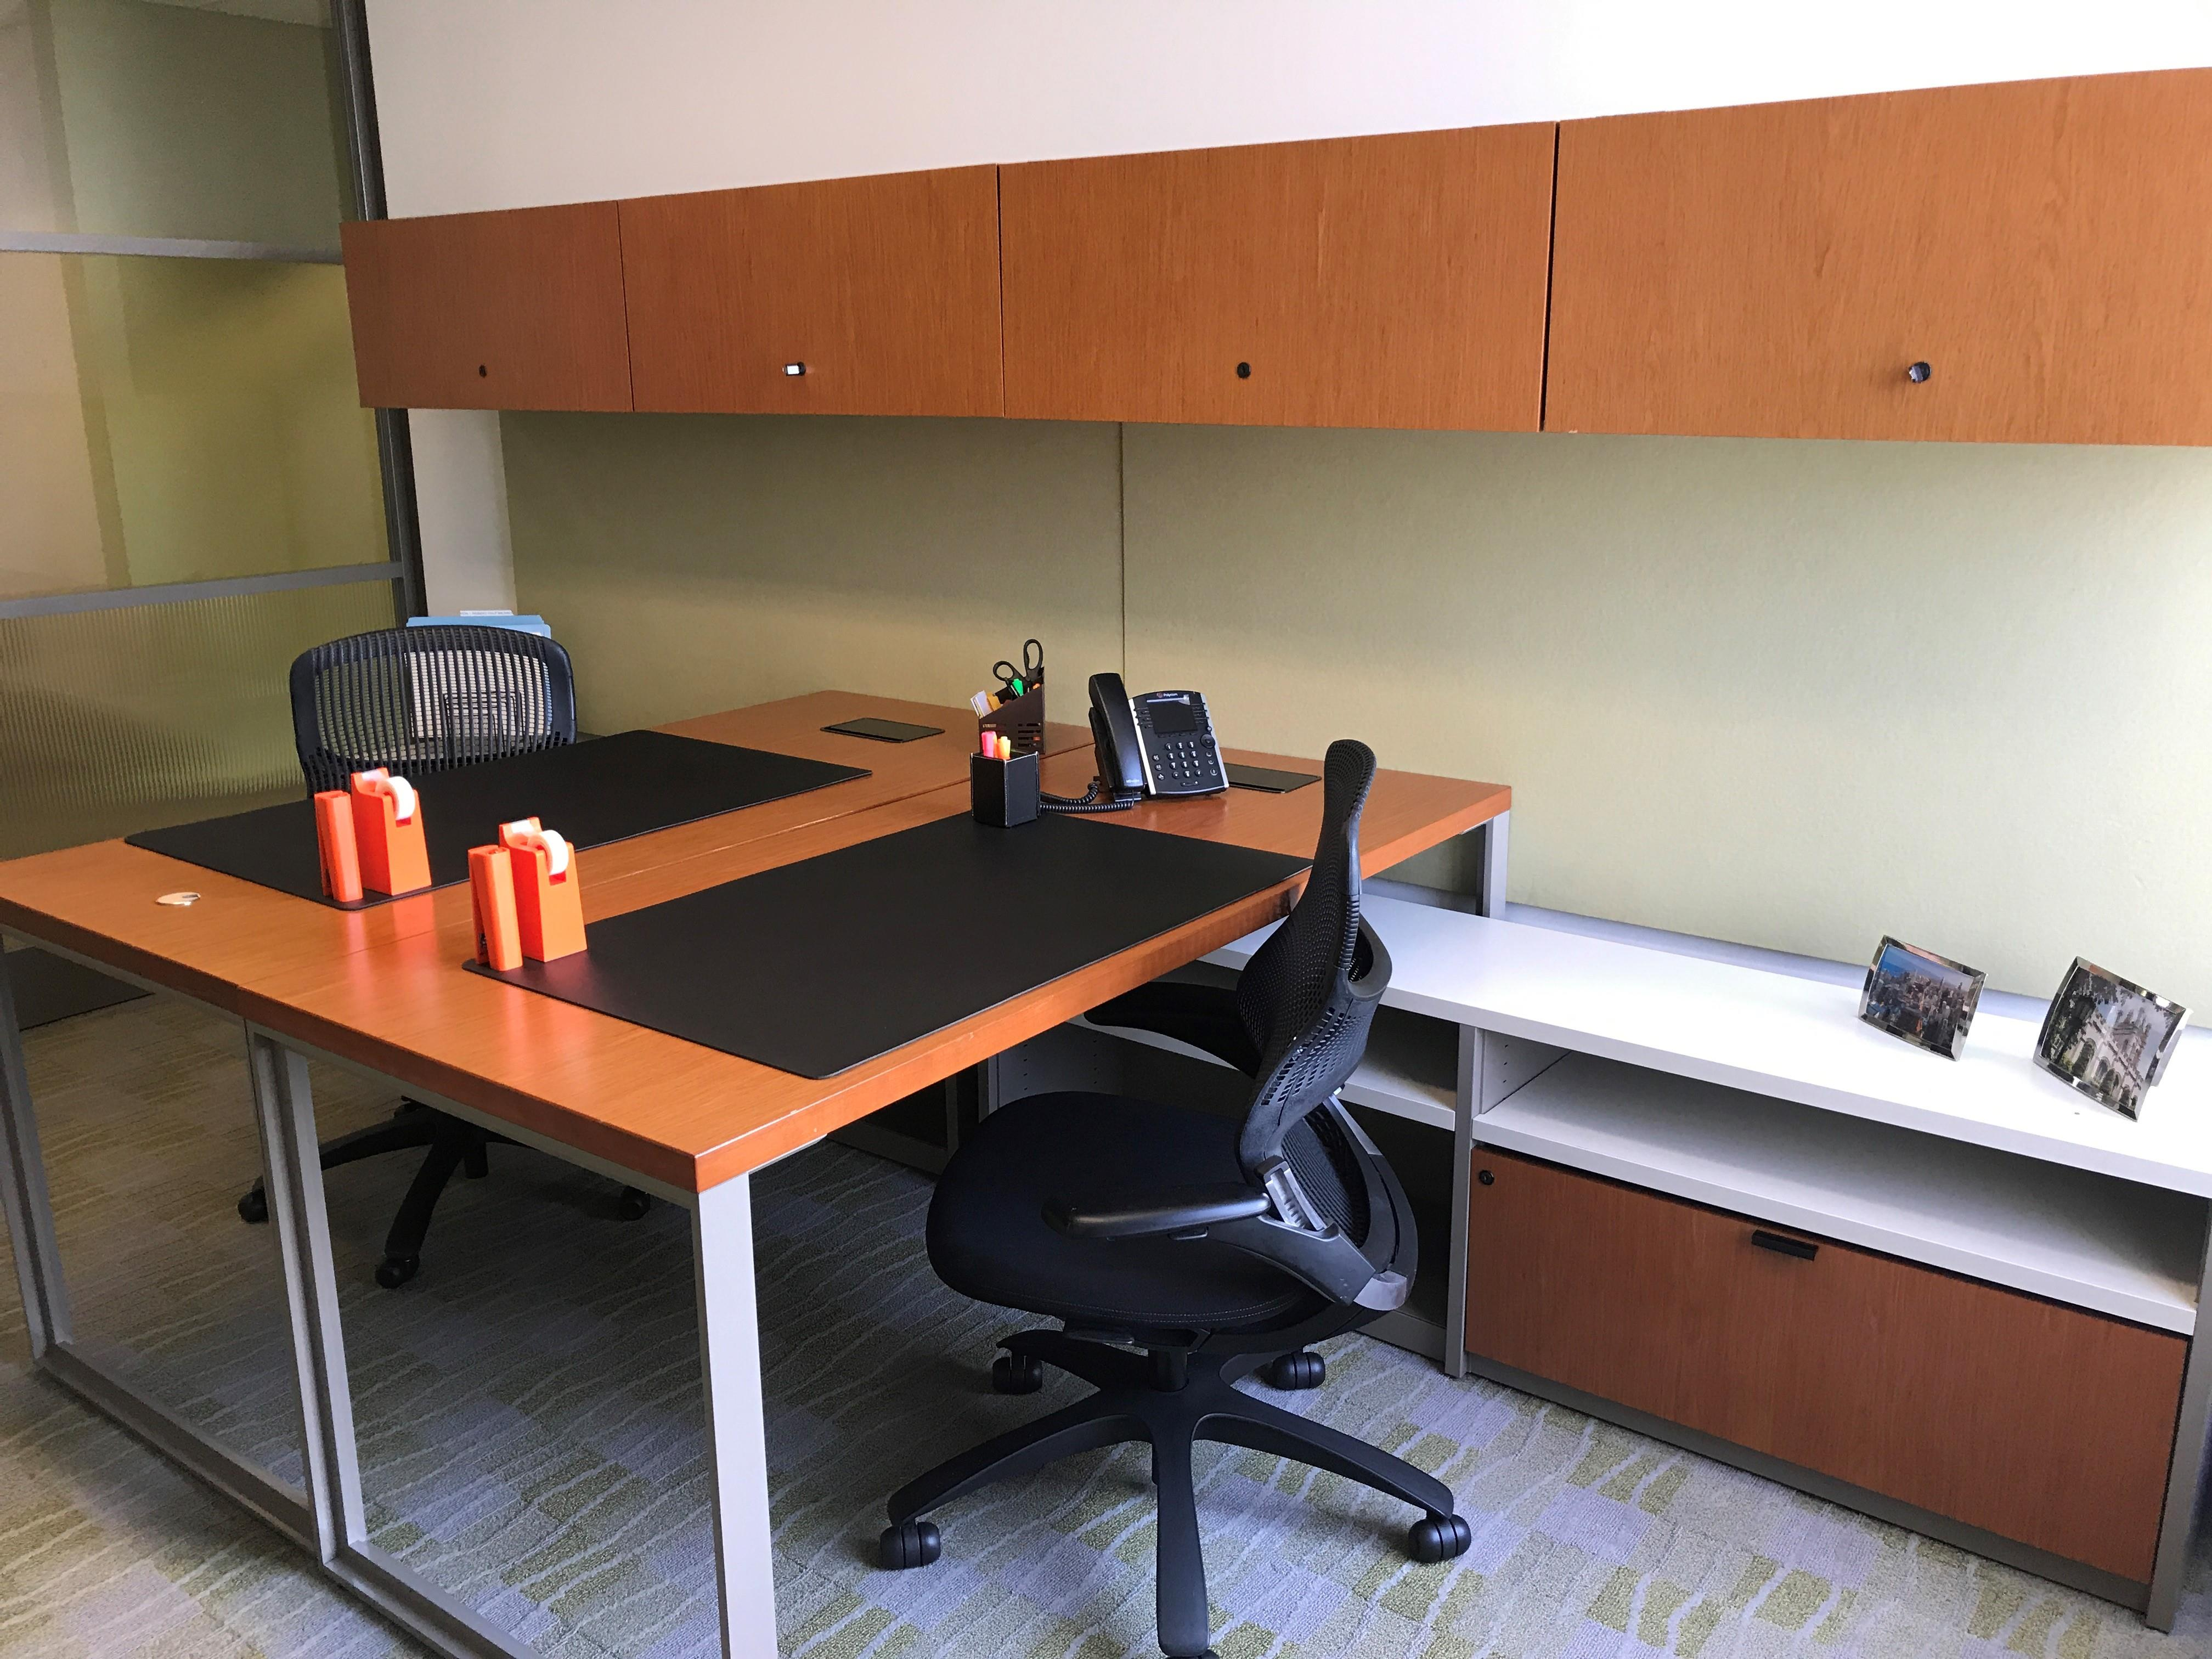 Carr Workplaces - Aon Center - Private Exterior Office for 2 People